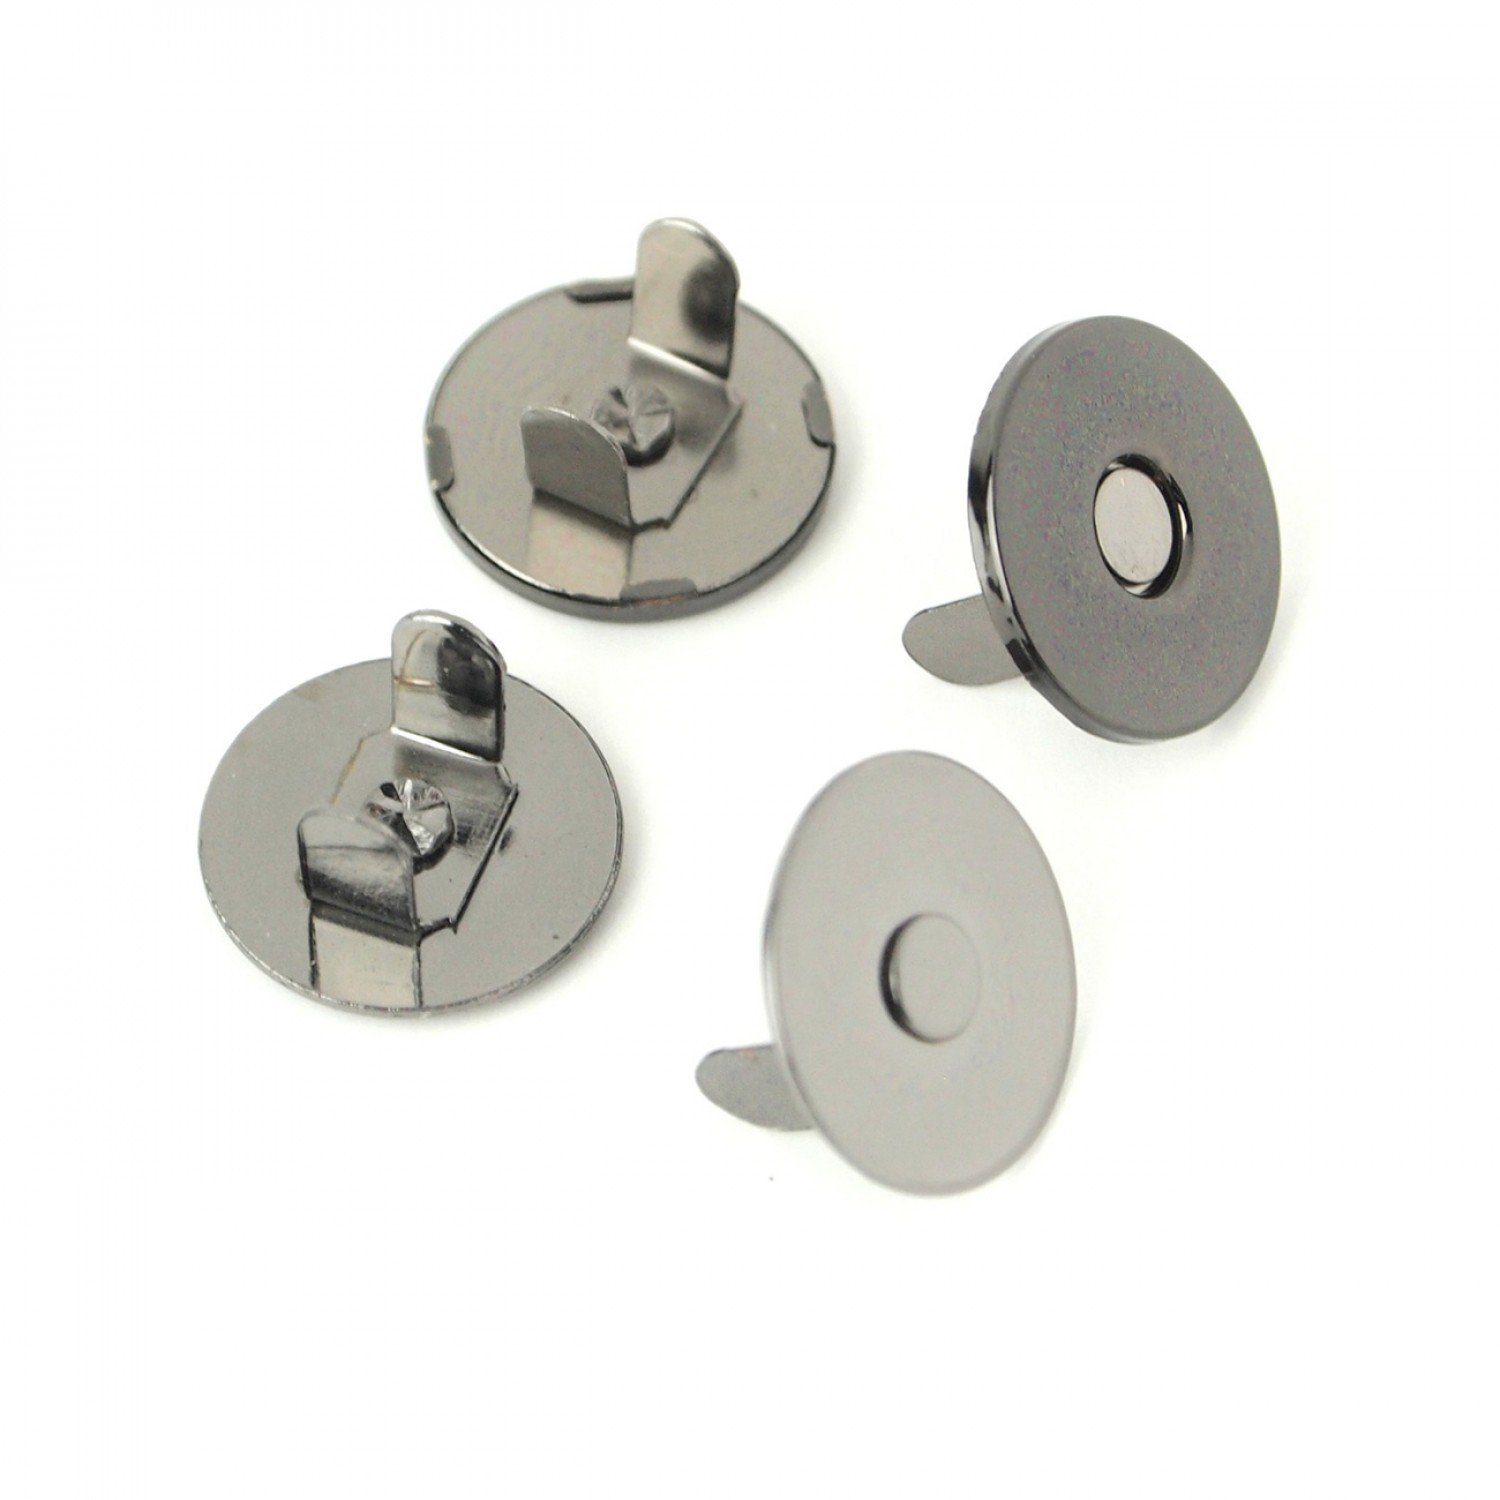 Magnetic Snaps - Set of 2 - 3/4in - STS158B - Gunmetal